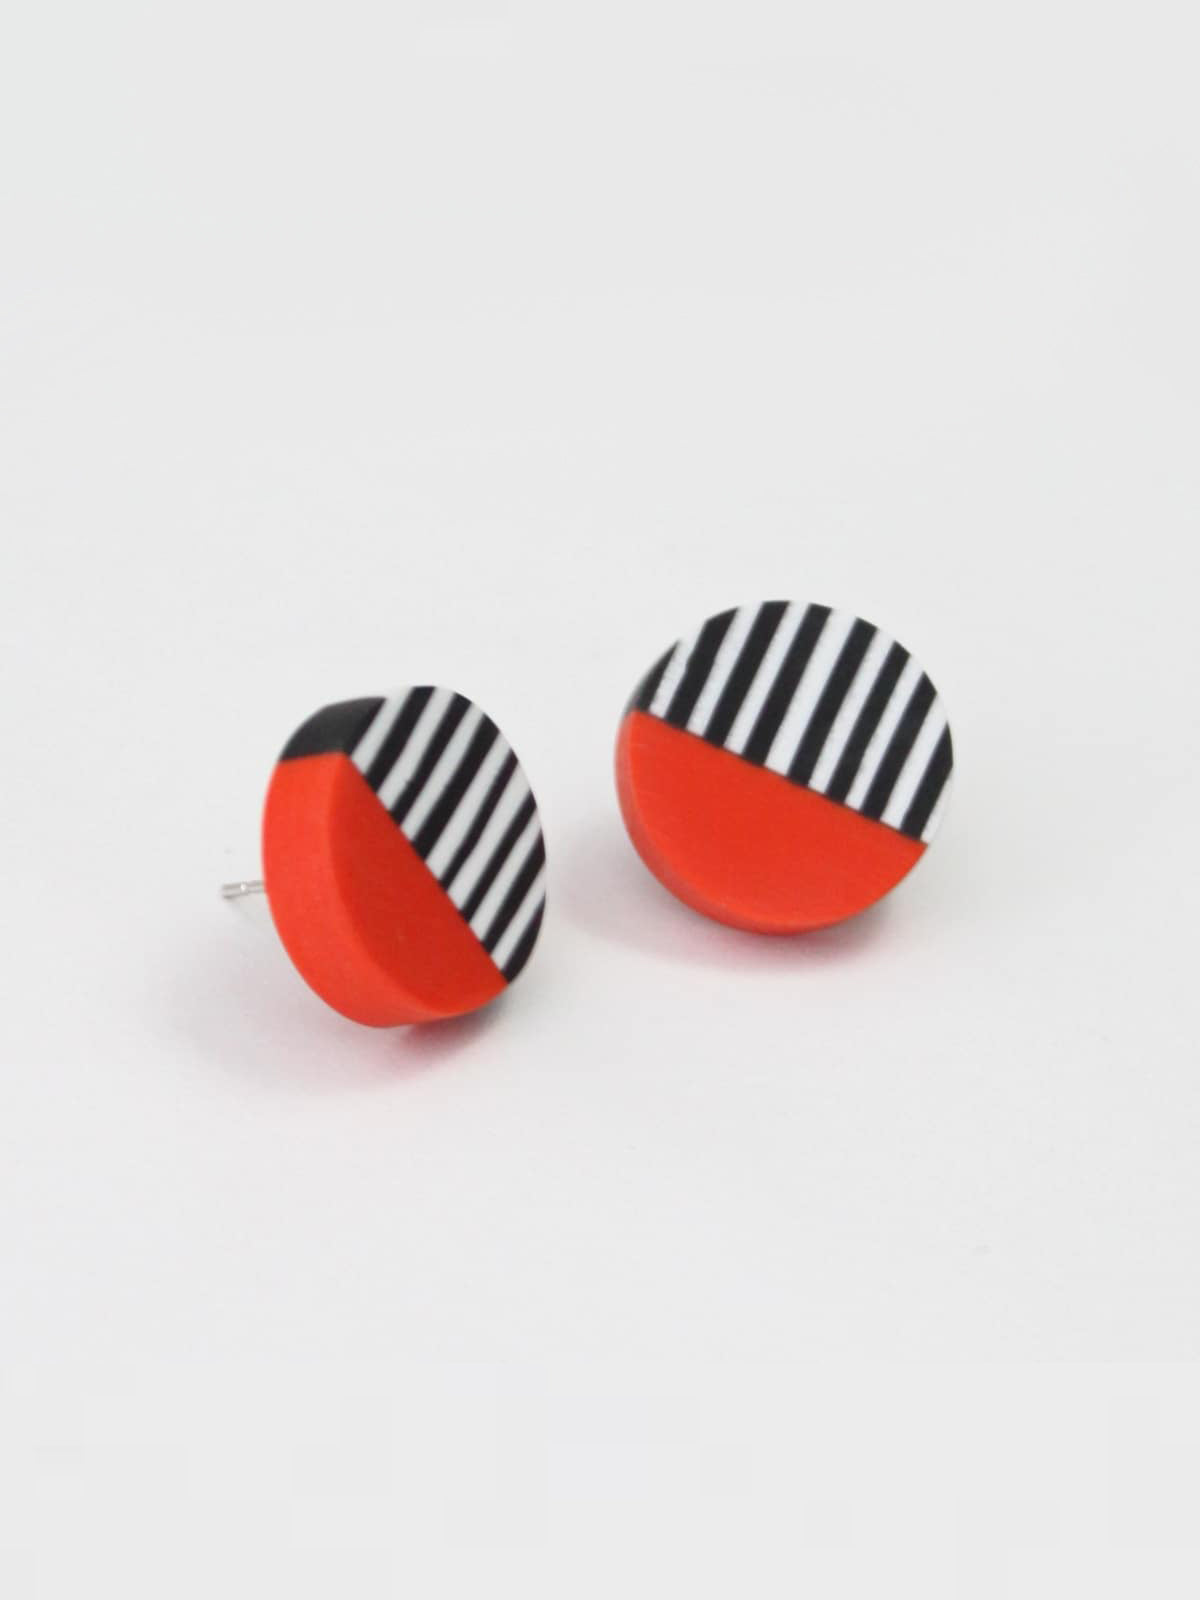 Sylca Designs Chloe Stud Earrings, Fire - Statement Boutique